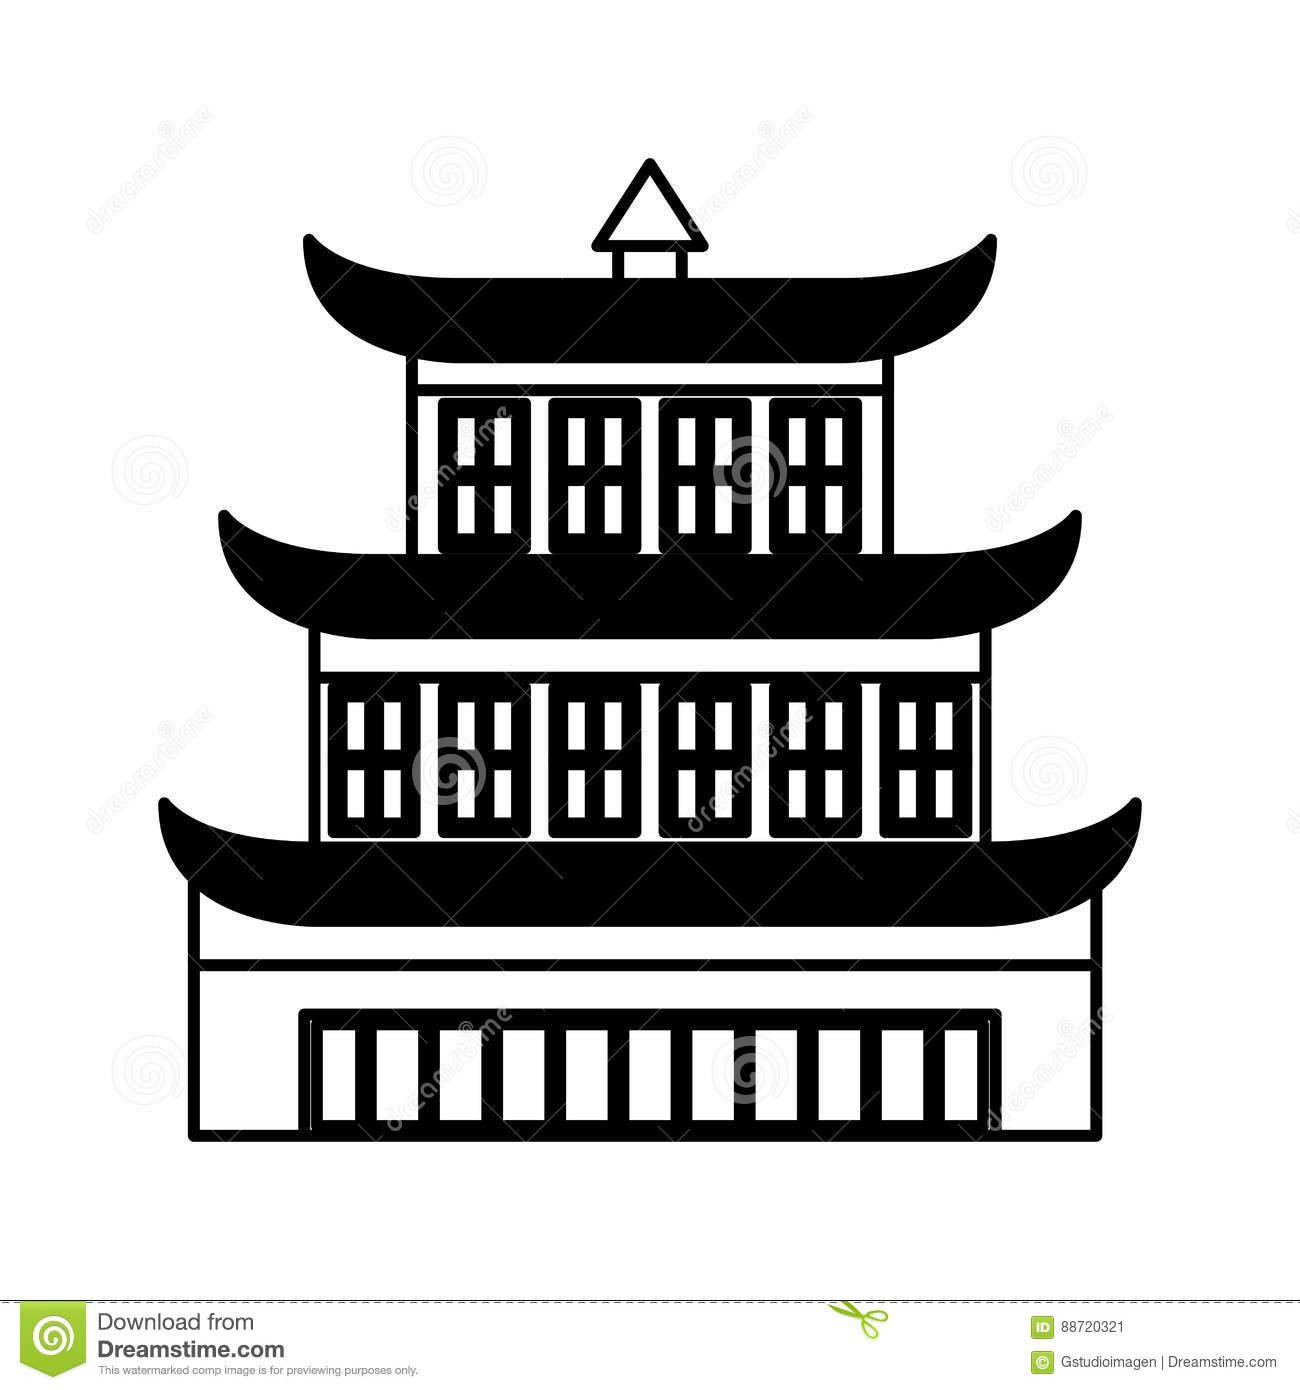 asian building castle icon stock vector - image: 88720321